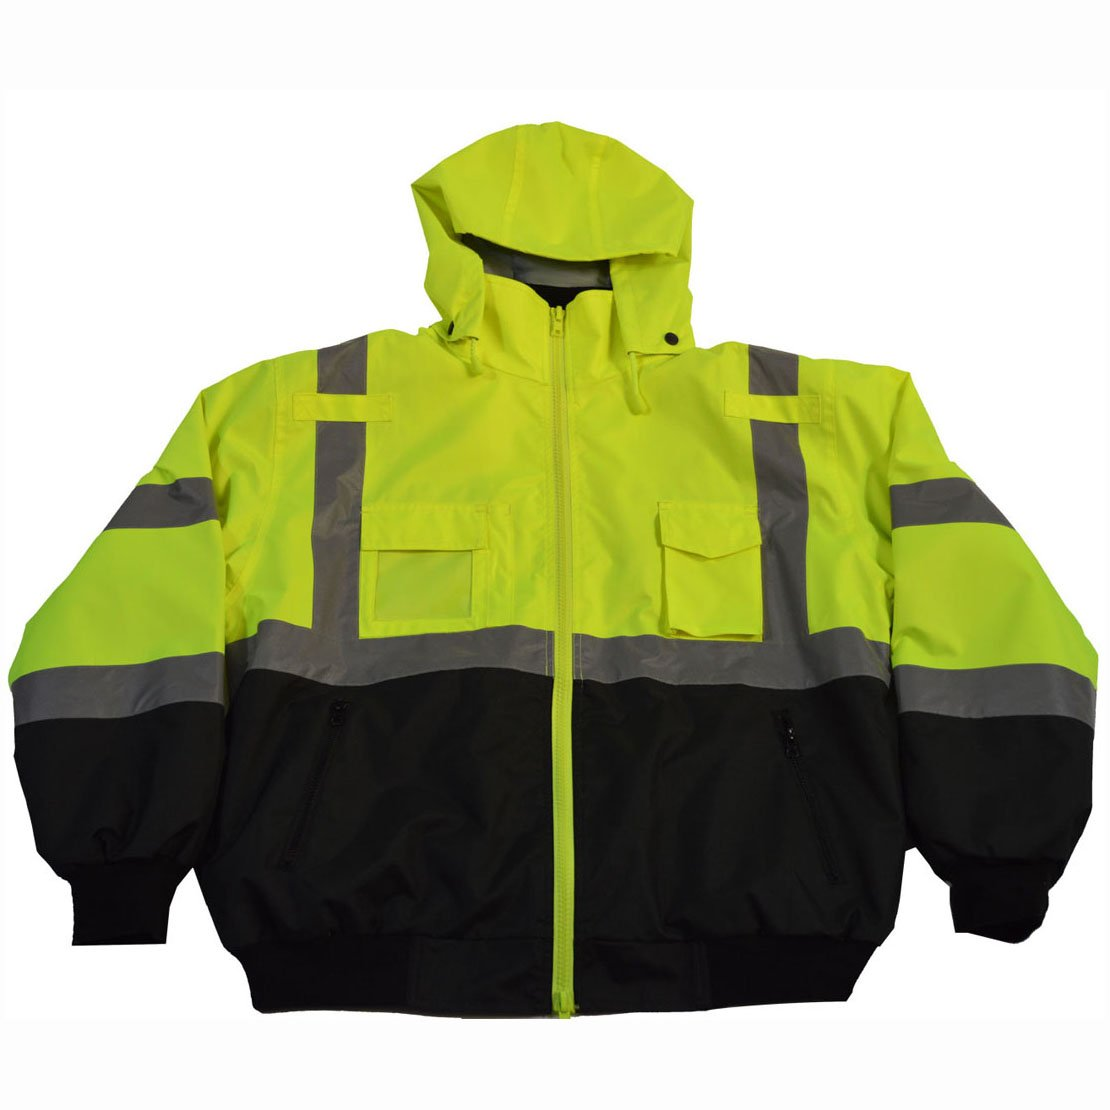 Petra Roc LBBJ-C3-6X High-Vis Bottom Safety Bomber Jacket, 6X-Large, Lime/Black by Petra Roc (Image #1)